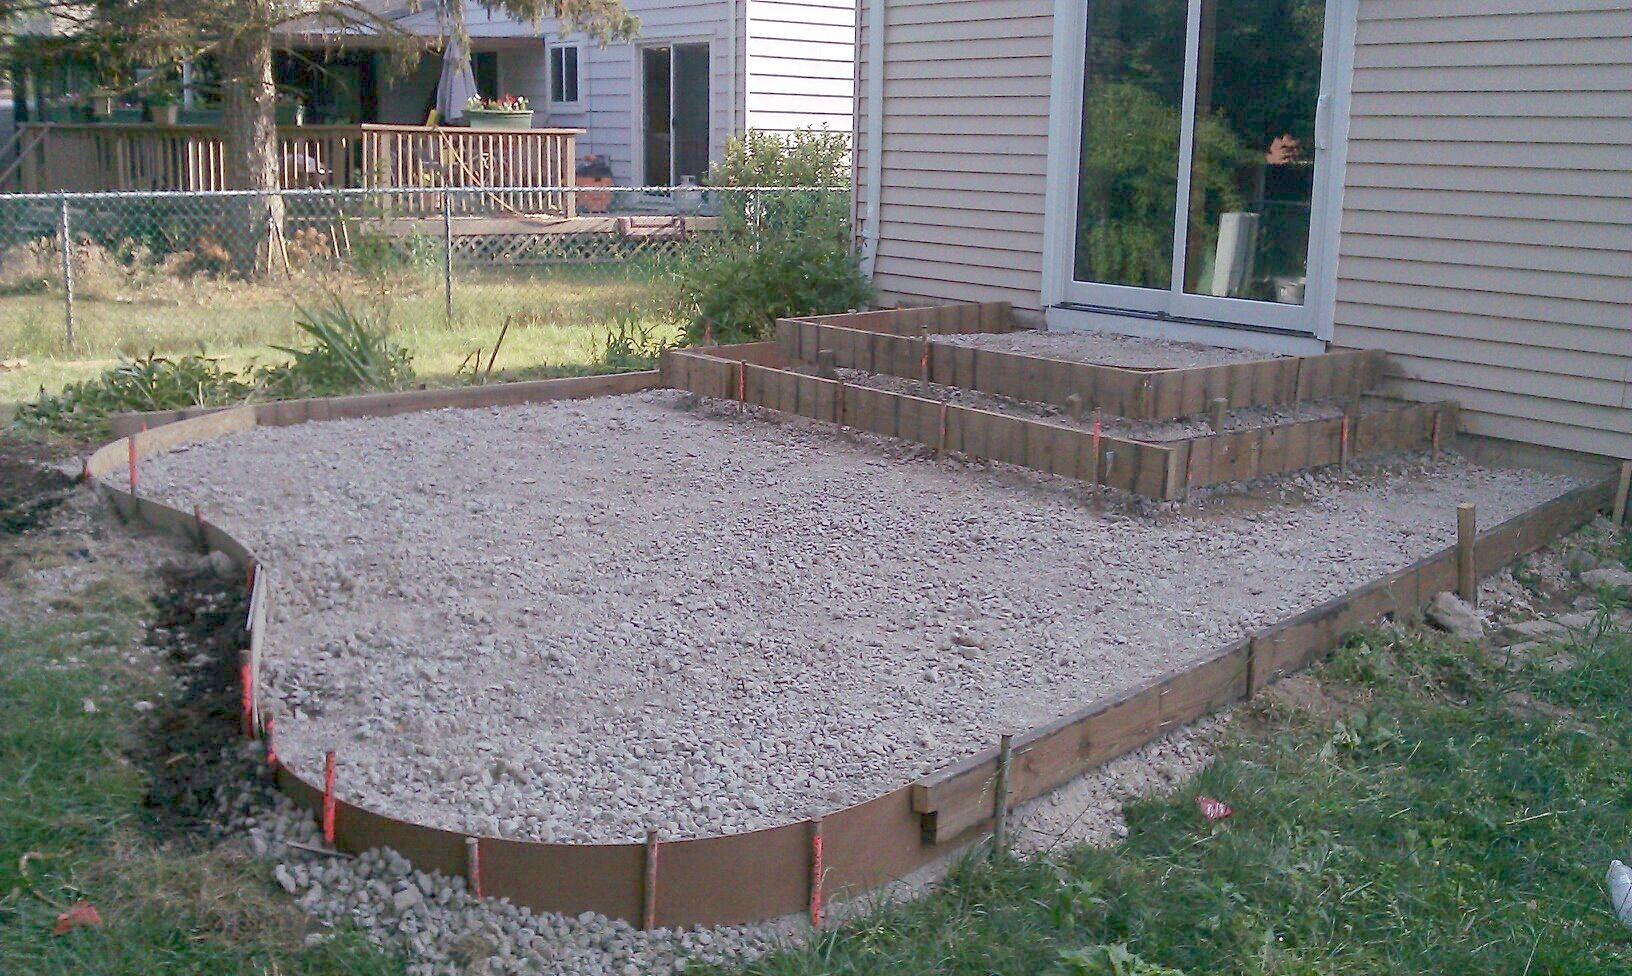 Poured Concrete Patio Designs patio and steps were